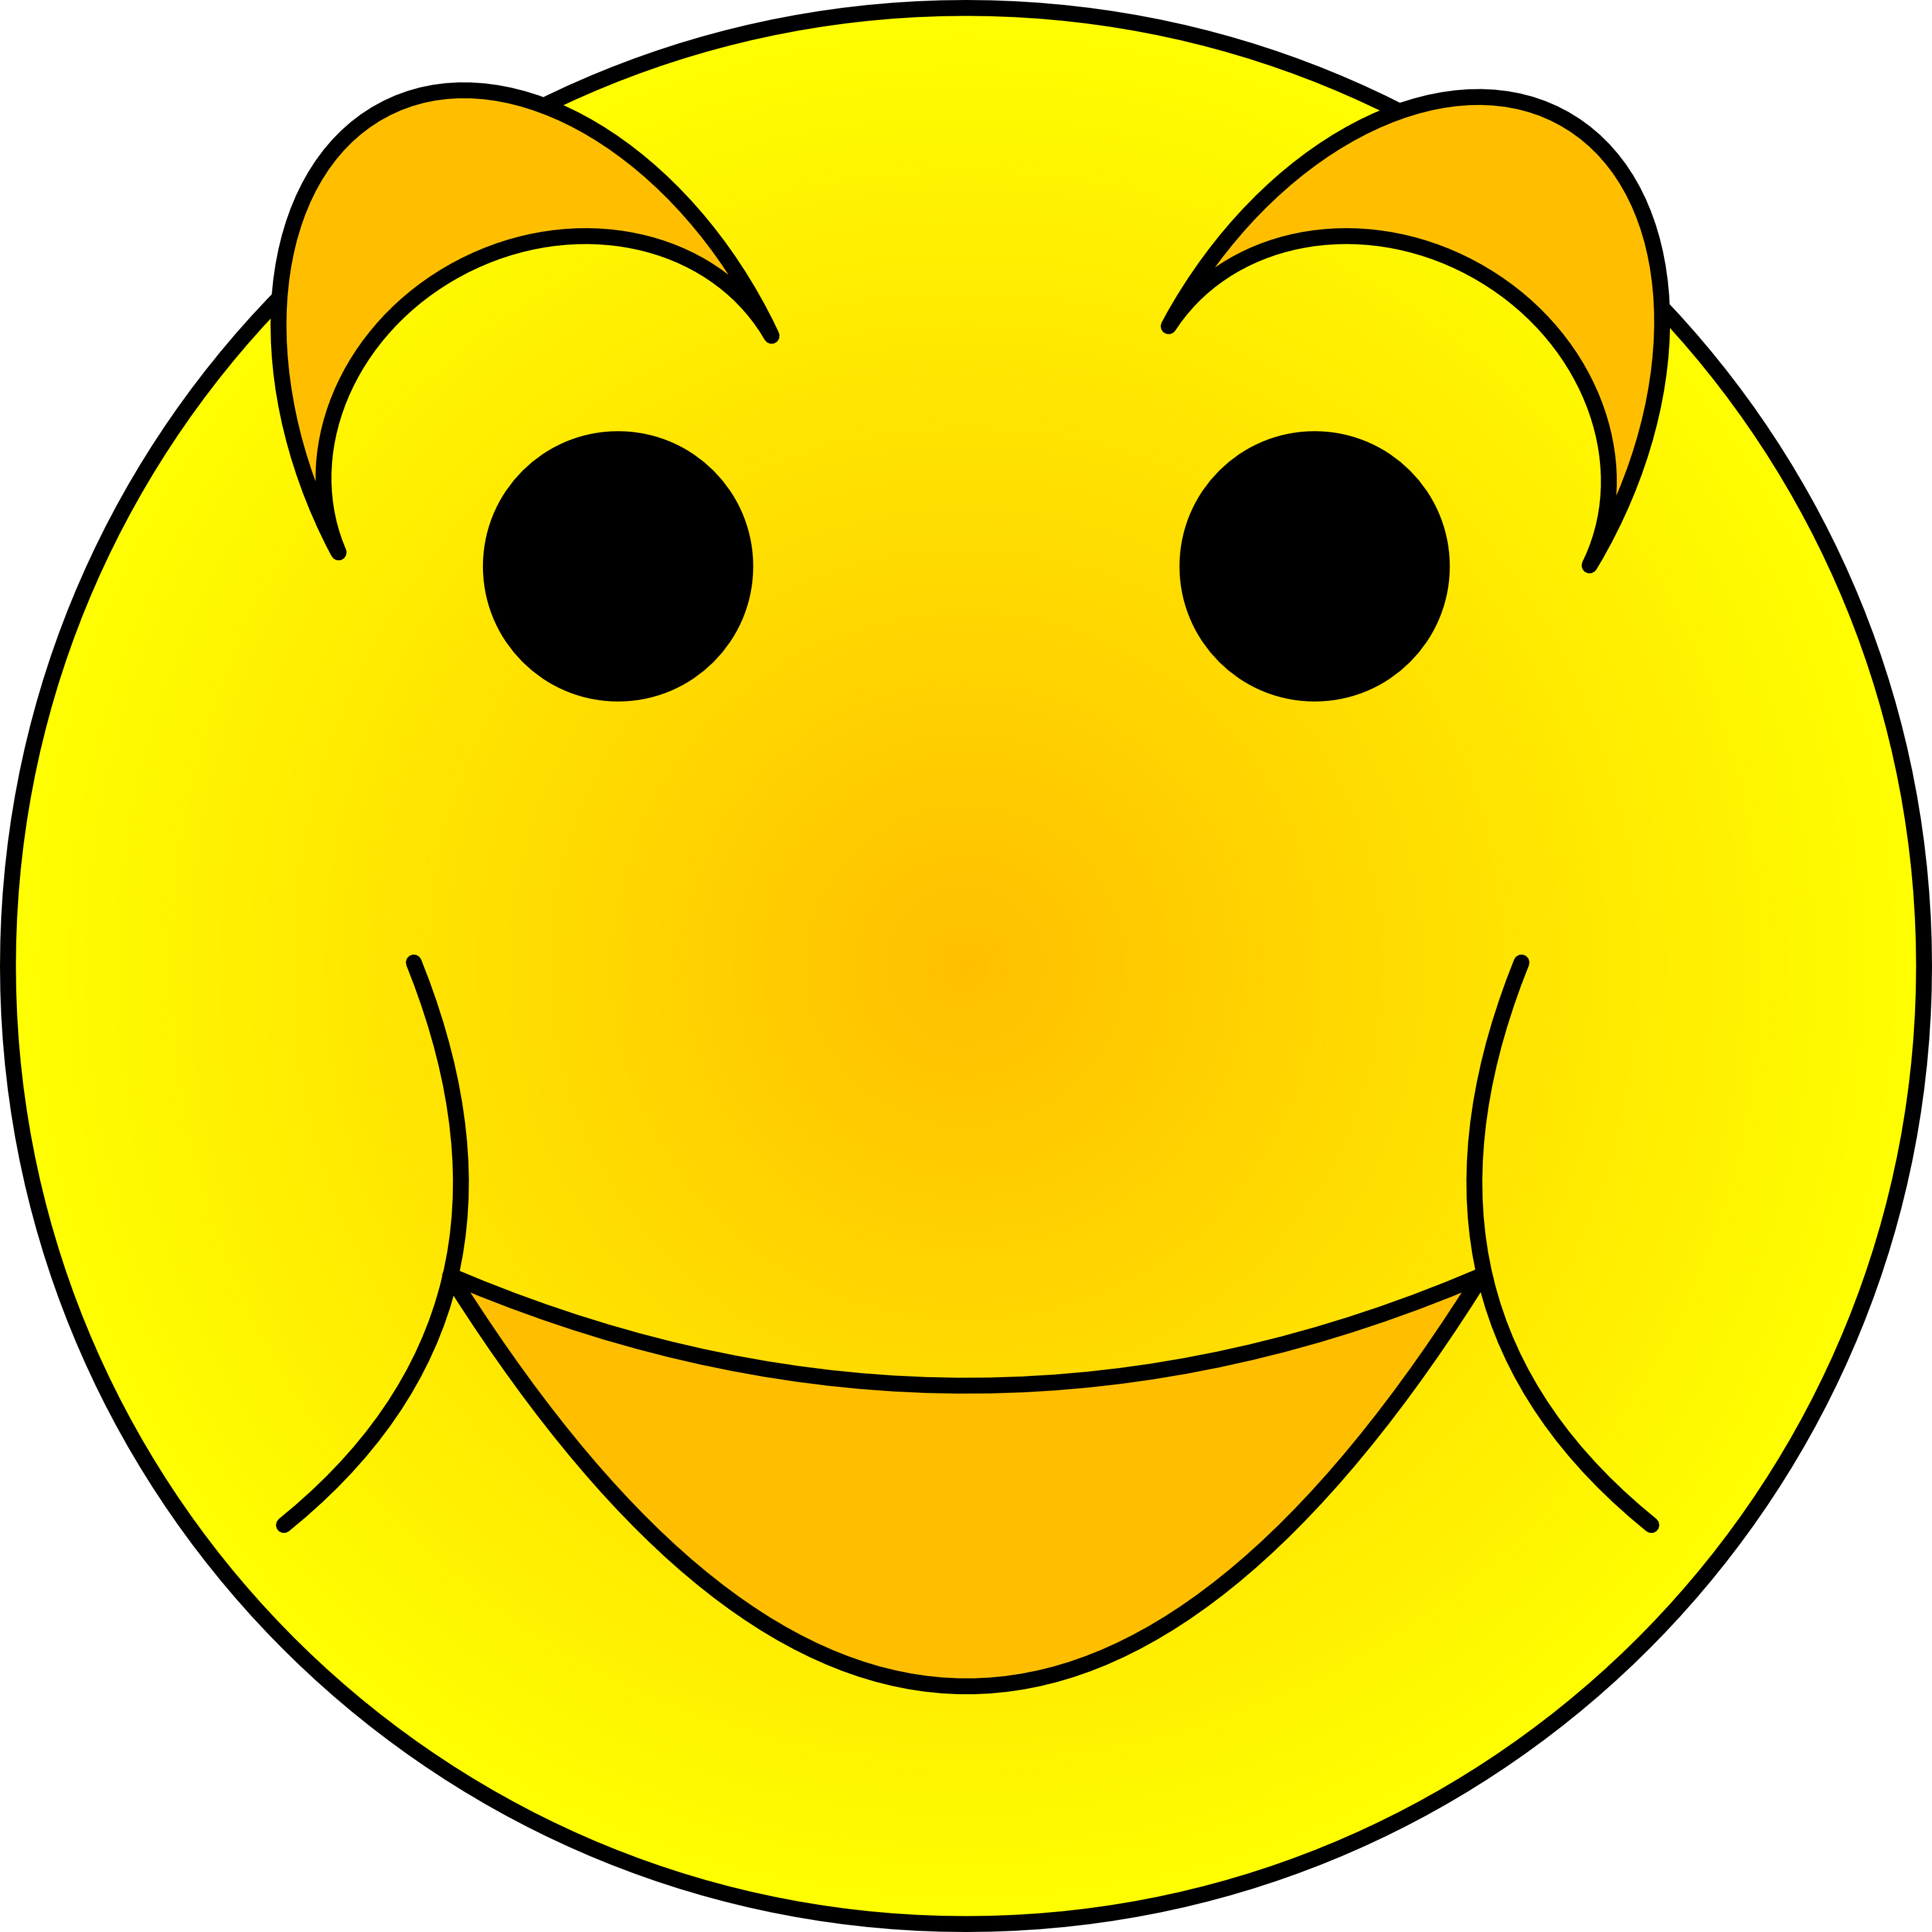 Free Clip Art Smiley Faces Emotions - Cliparts.co